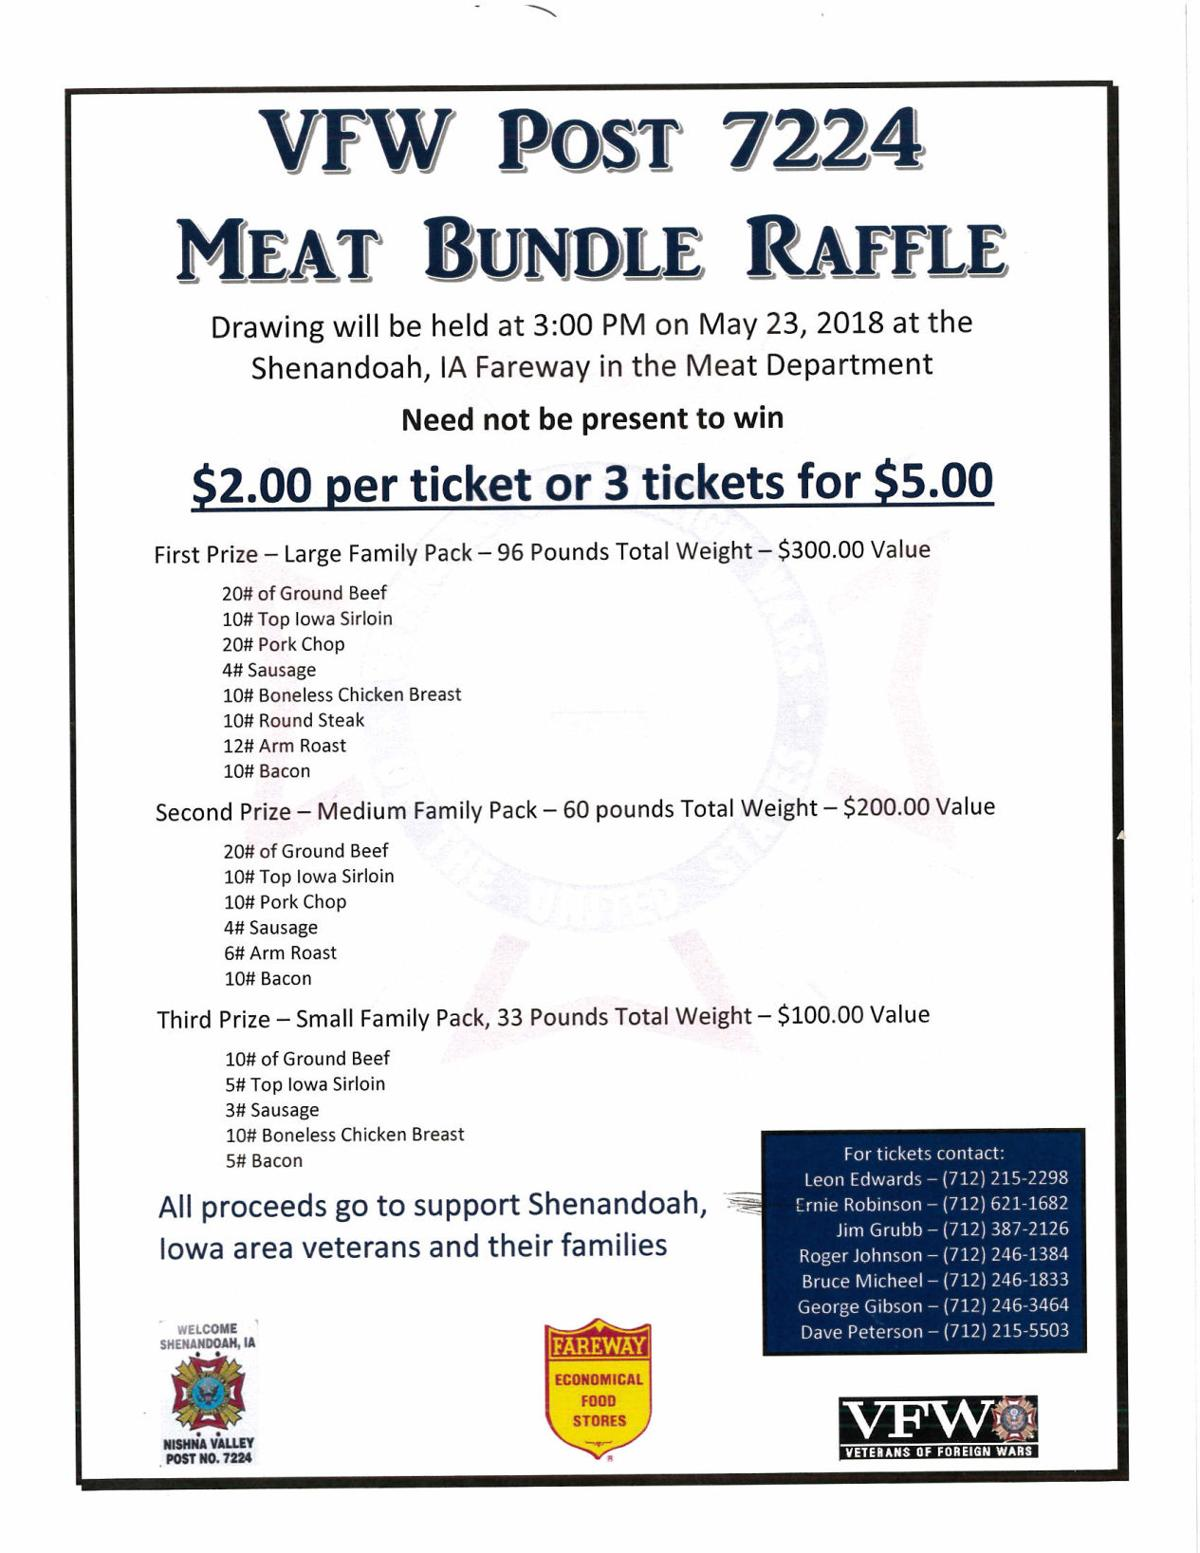 Shen Vfw Holding Raffle For Meat Bundles News Kmalandcom